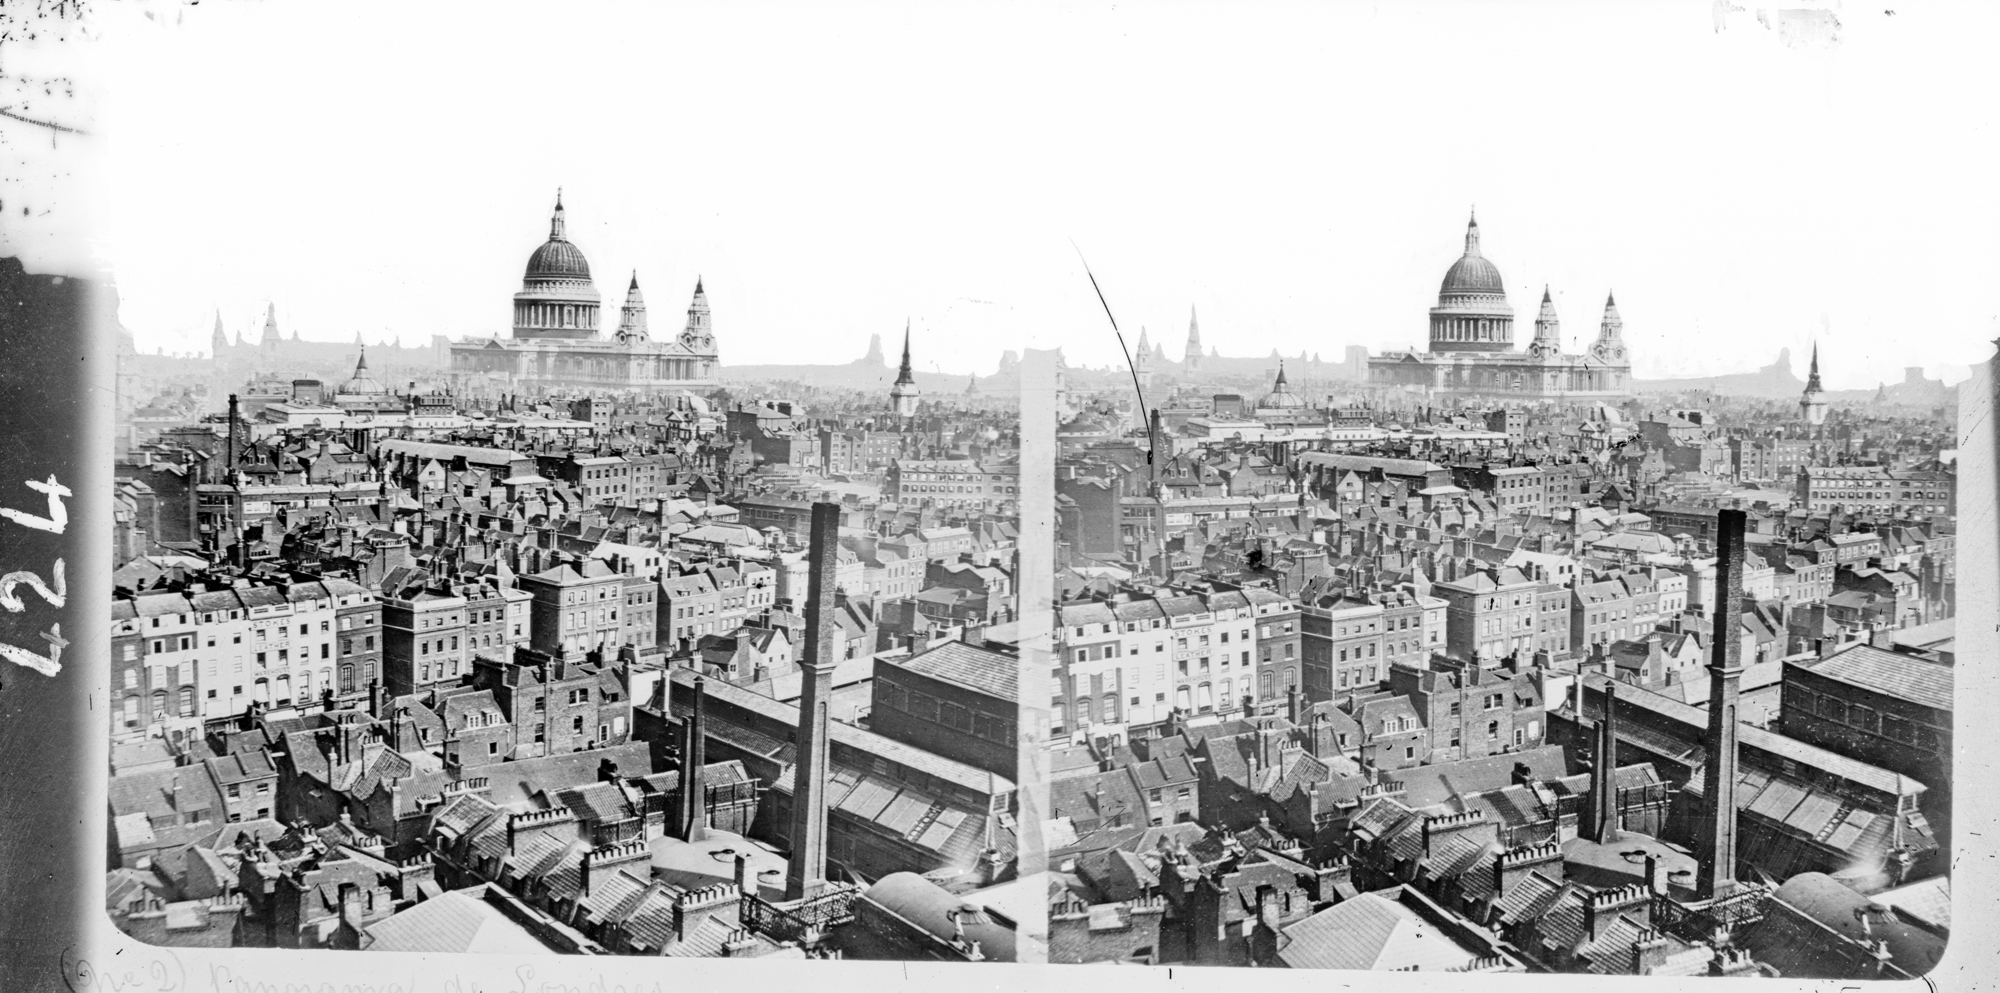 Full stereoscopic image of St. Paul's Cathedral, London